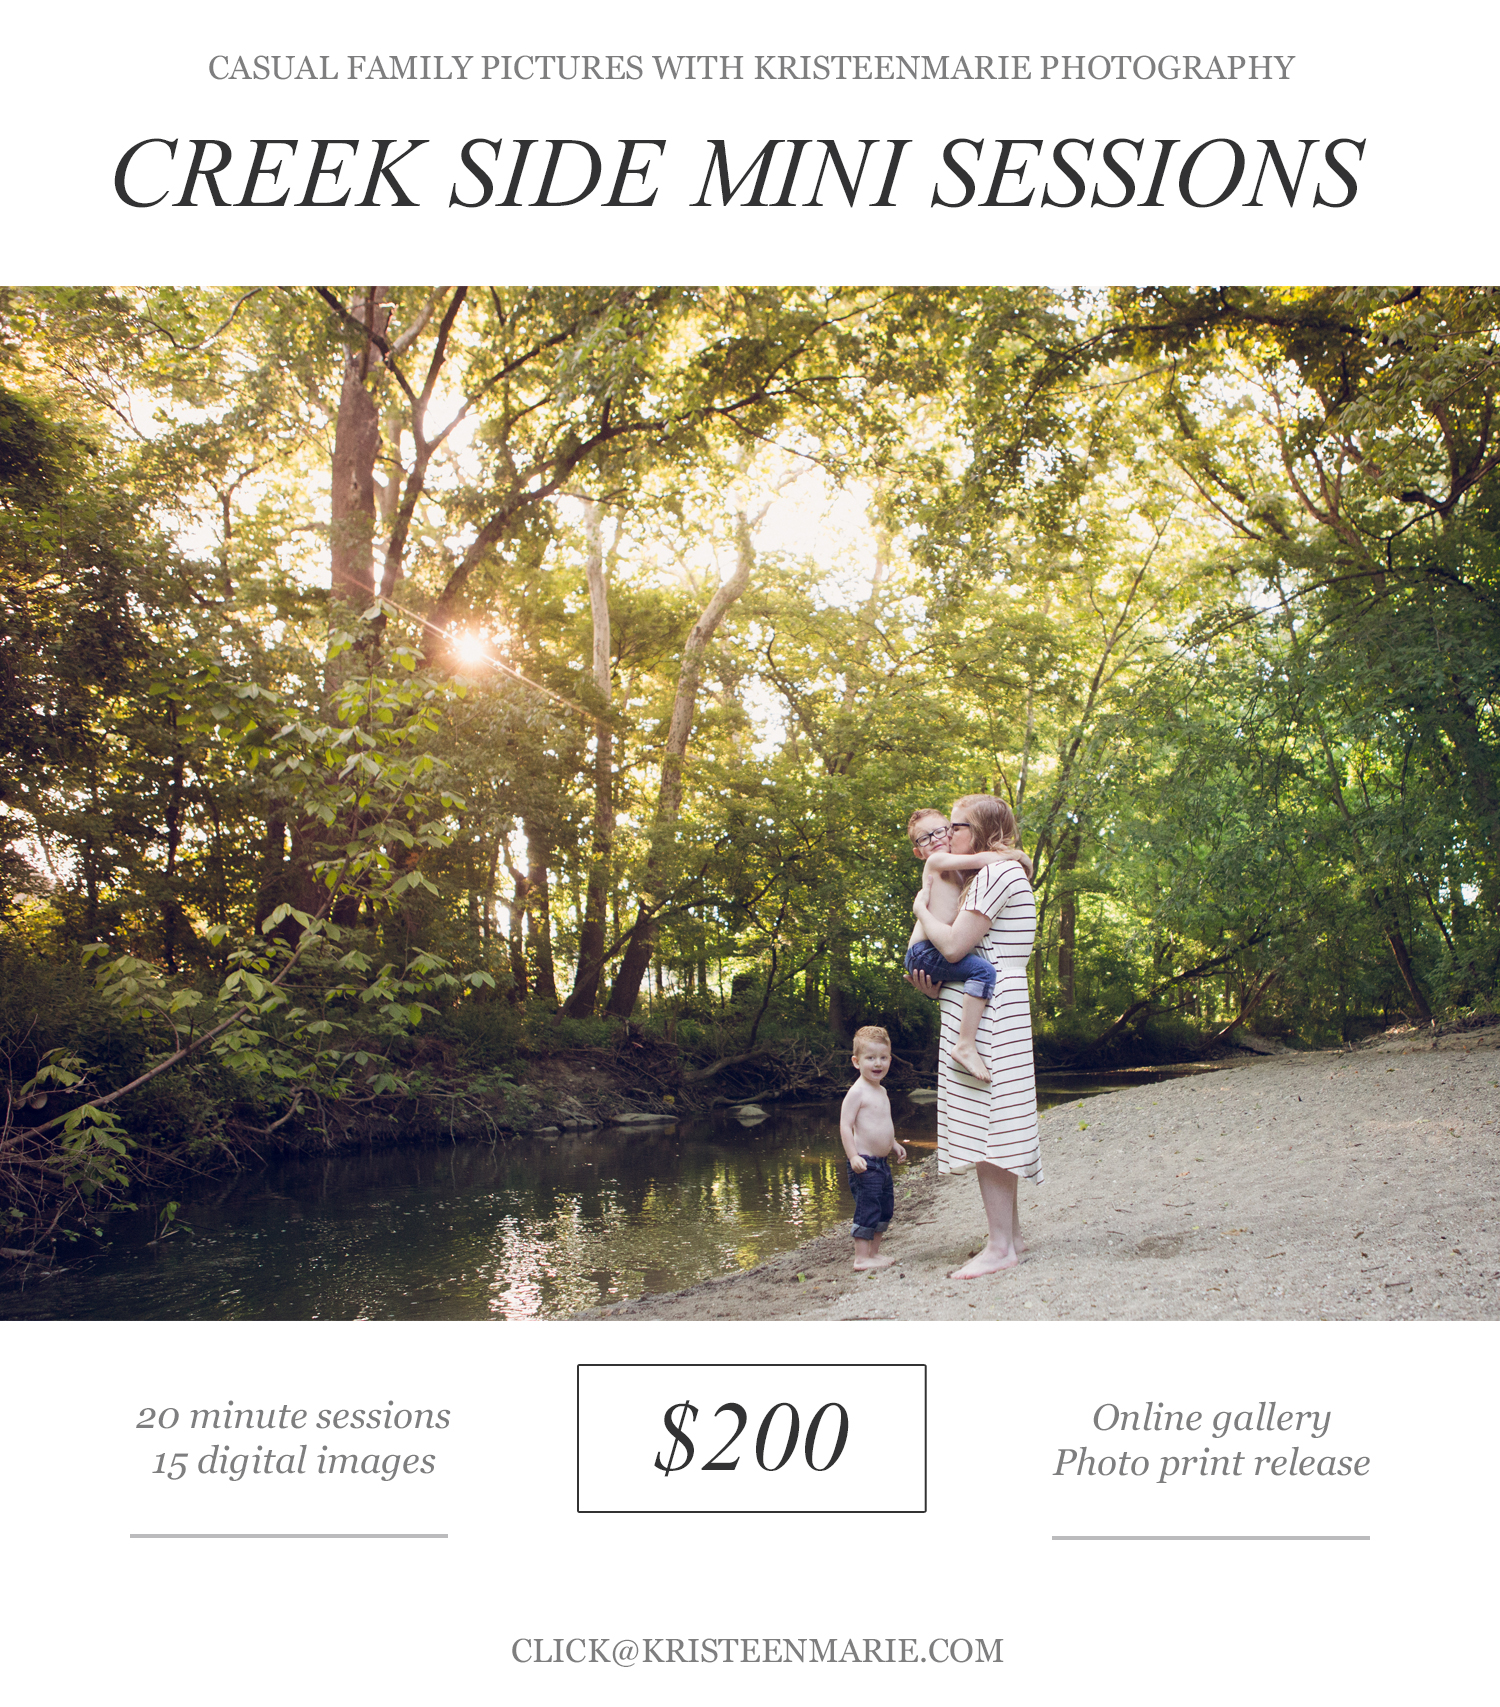 creek side mini session in Carmel, IN - KristeenMarie photography